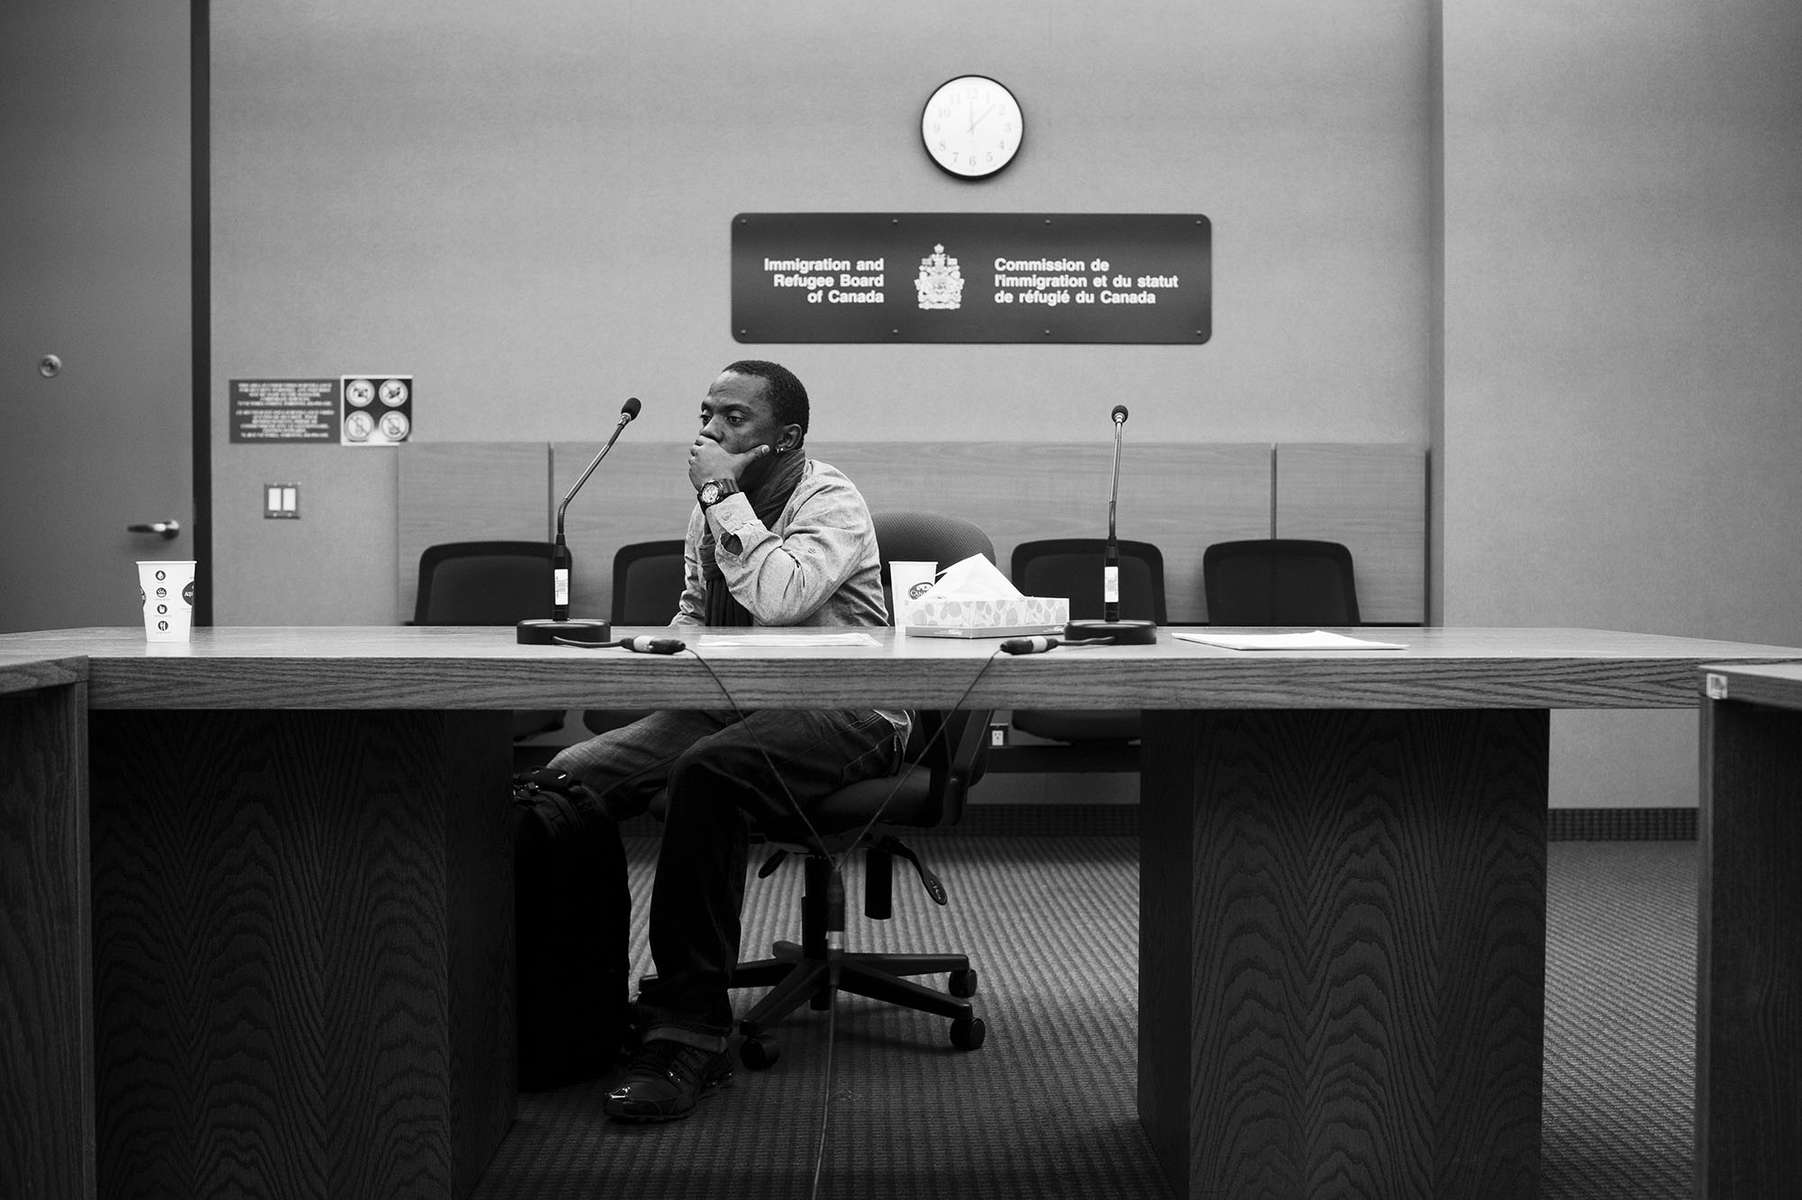 "TORONTO, ON: DECEMBER 2, 2013Abdulah reacts after his hearing at the Immigration and Refugee Board of Canada. He fled Uganda to Canada three days after he was imprisoned and tortured by local police because of his sexual orientation. Being gay in Uganda is a criminal offence and same-sex acts are punishable with life imprisonment.Last December, Mr. Aziz Ssali tried claiming refugee status but was rejected. Shortly after the ""negative"" decision, a Ugandan tabloid newspaper published a list of the country's homosexuals that included his name. He is currently appealing the decision and will be able to present this as additional evidence in his case. If the decision is upheld, he is unsure of where he will go or what he will do.(Image first published June 22, 2014 in The Globe and Mail)http://www.theglobeandmail.com/news/national/worldpride/article19285991/"